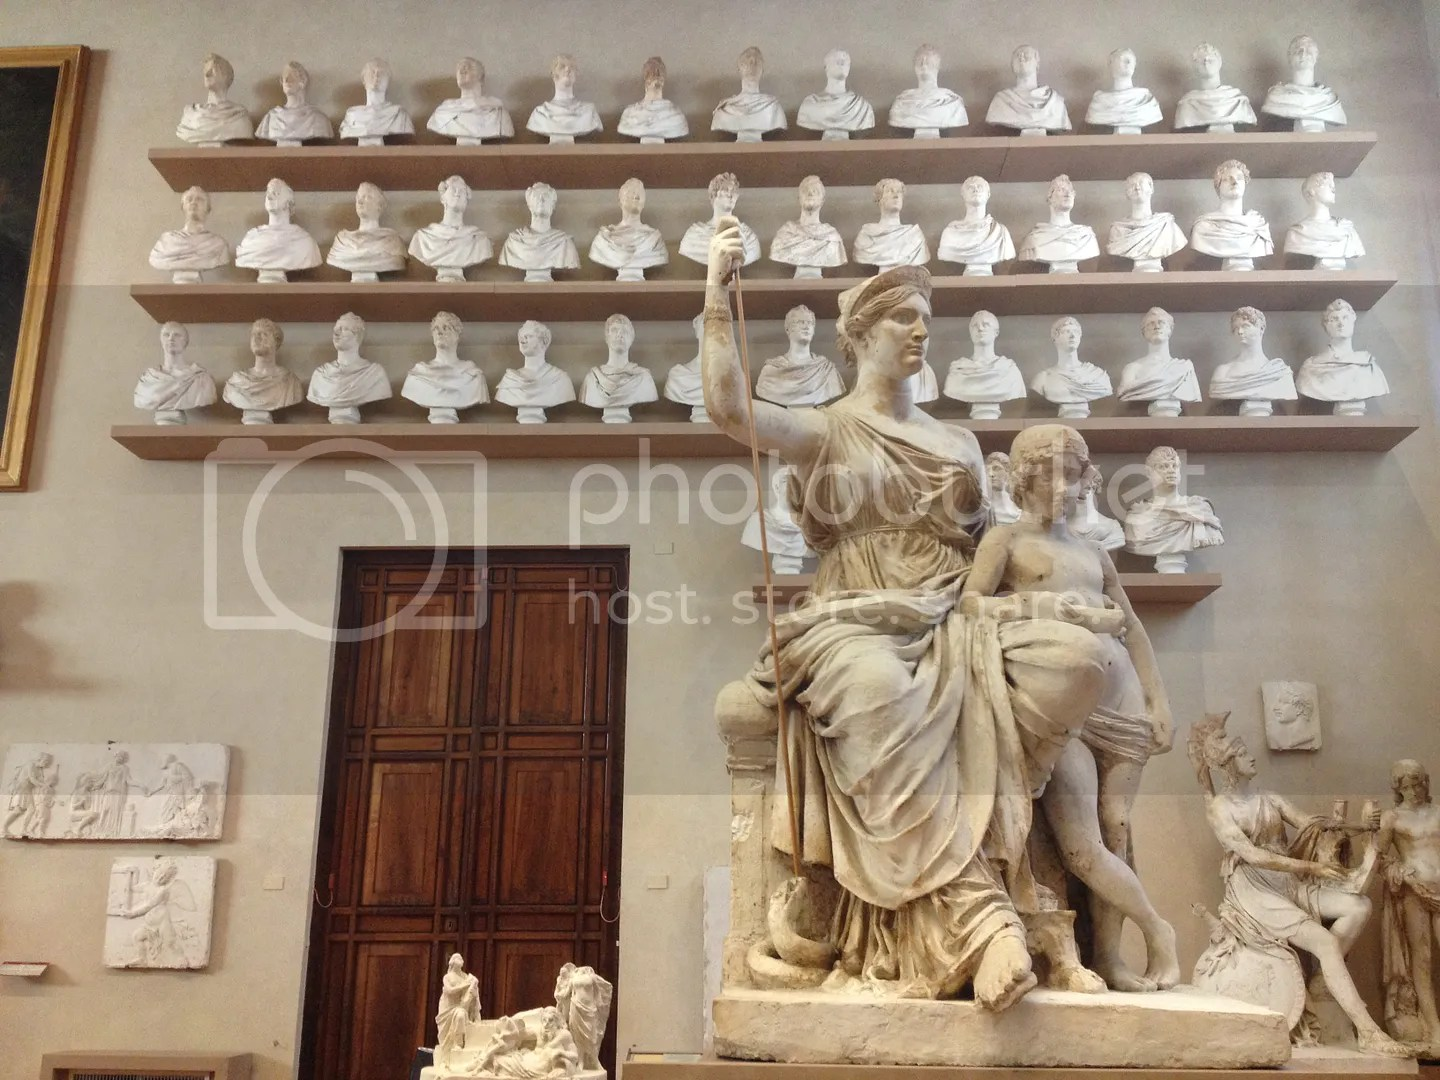 photo Florence-Academia_zps3nrrp4vn.jpg